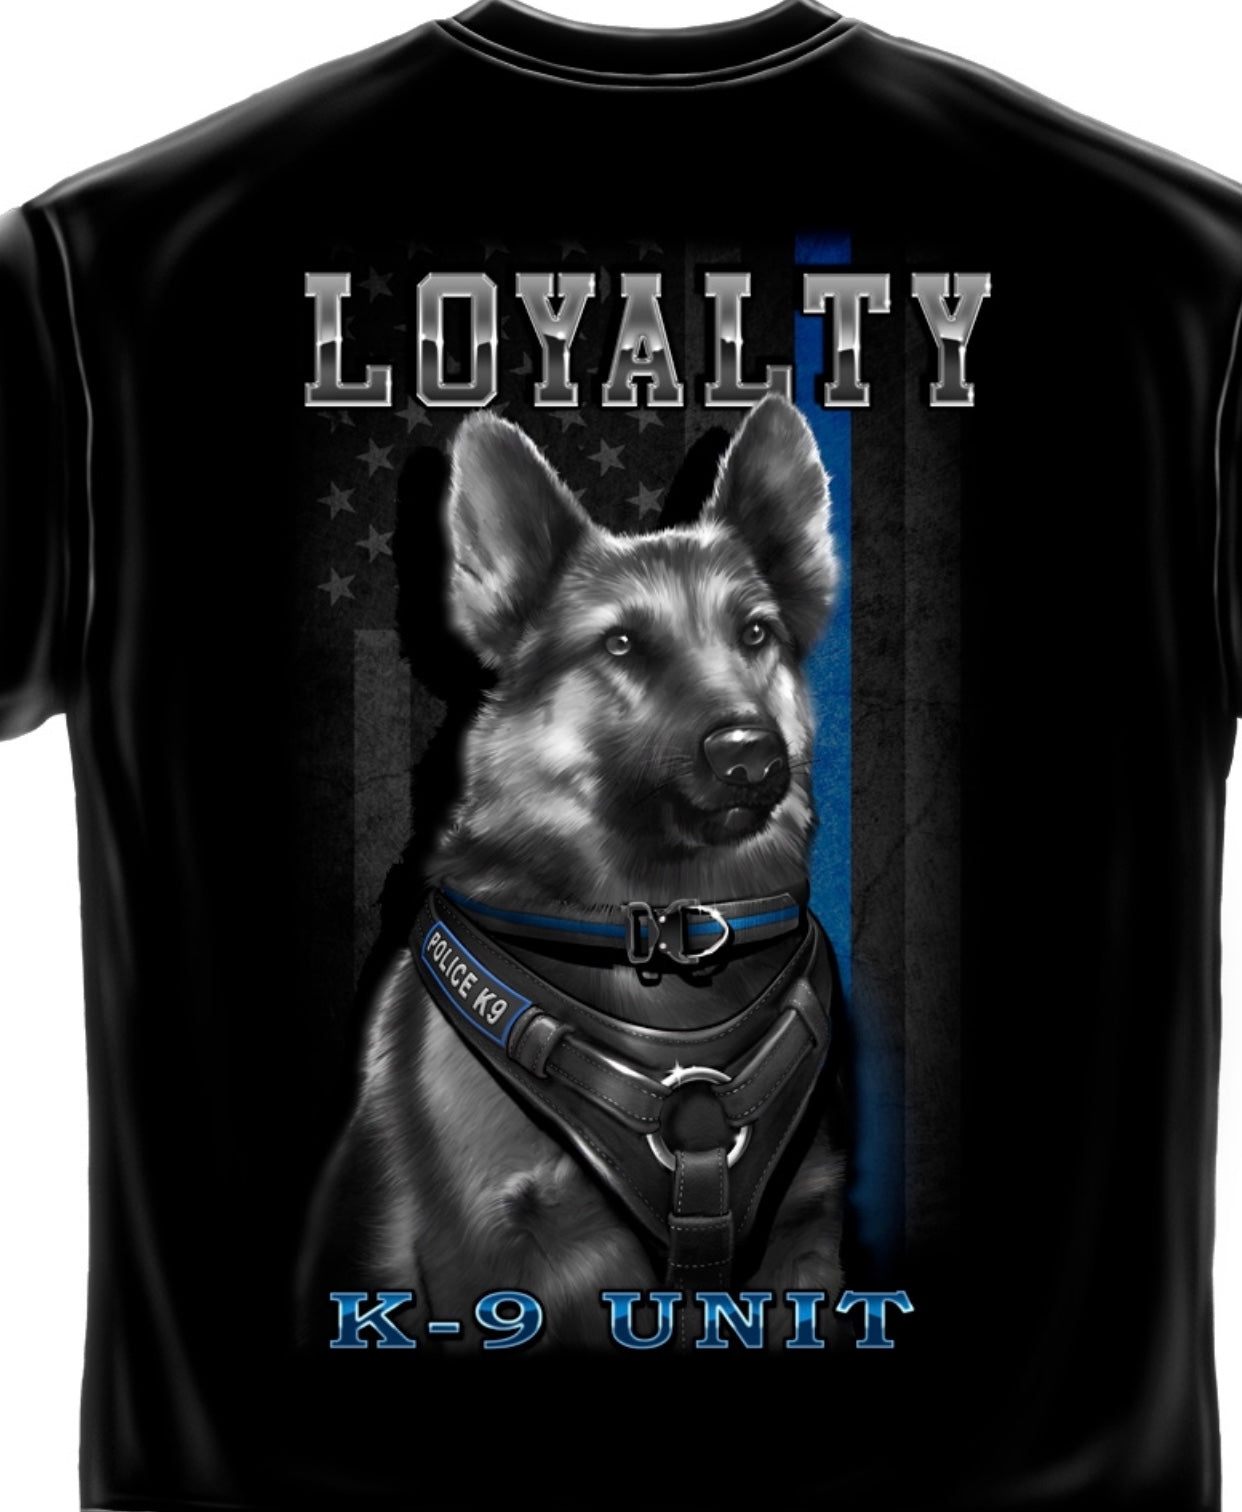 K-9 Police T Shirt - The Wall Kids, Inc.